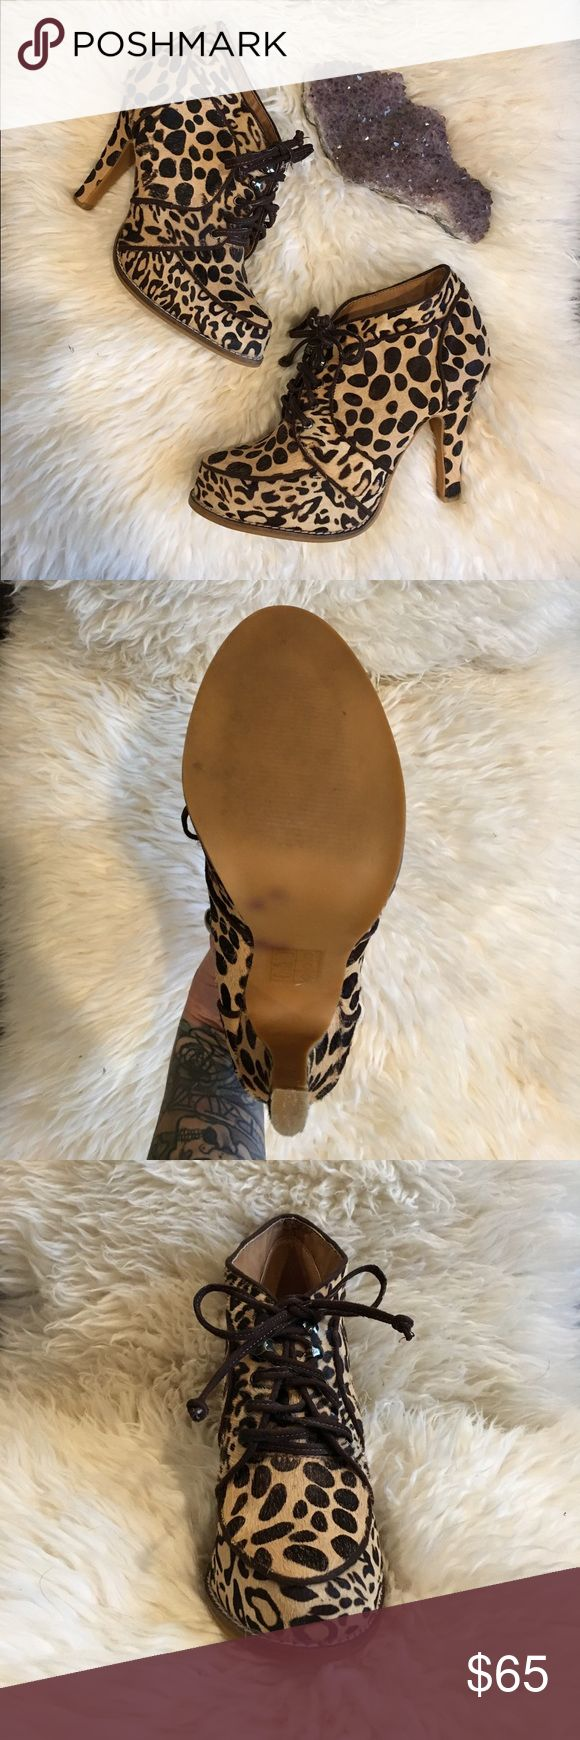 """Gorgeous Deena&Ozzy Leopard Booties Amazing pony hair, high heeled booties in super chic leopard print. 4"""" heel. Barely worn, in great condition. Size 8, true to size.  Brand is Deena&Ozzy, purchased from Urban Outfitters. Deena & Ozzy Shoes Ankle Boots & Booties"""